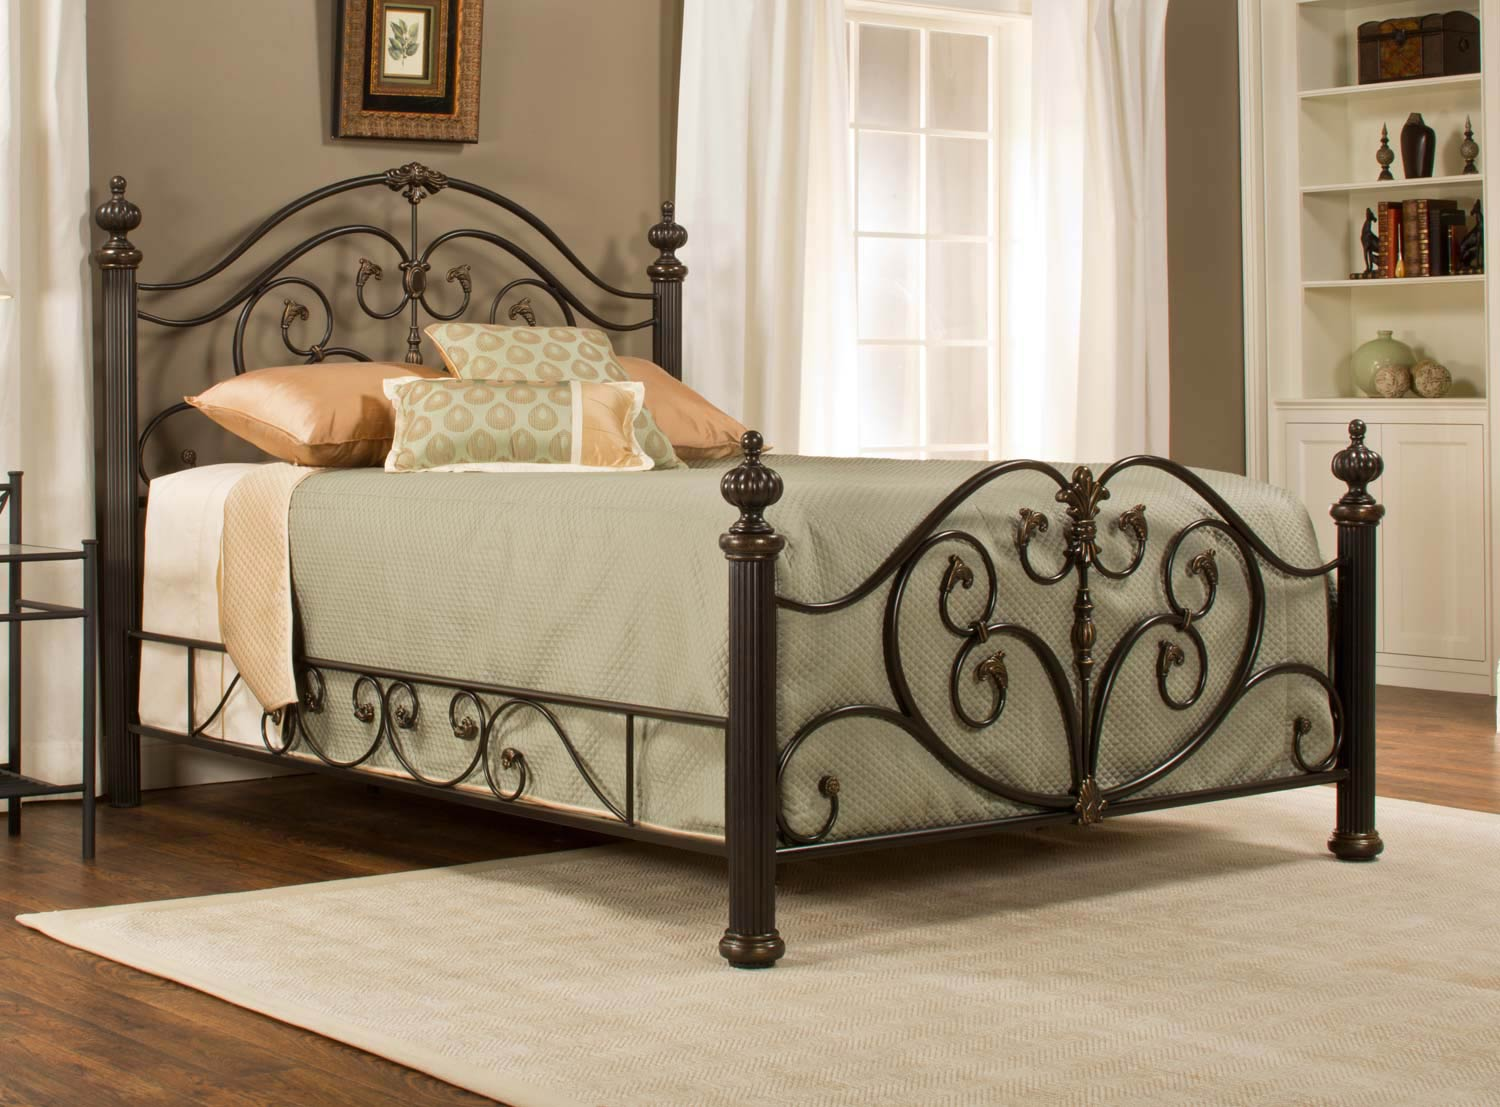 Hillsdale Grand Isle Bed - Brushed Bronze